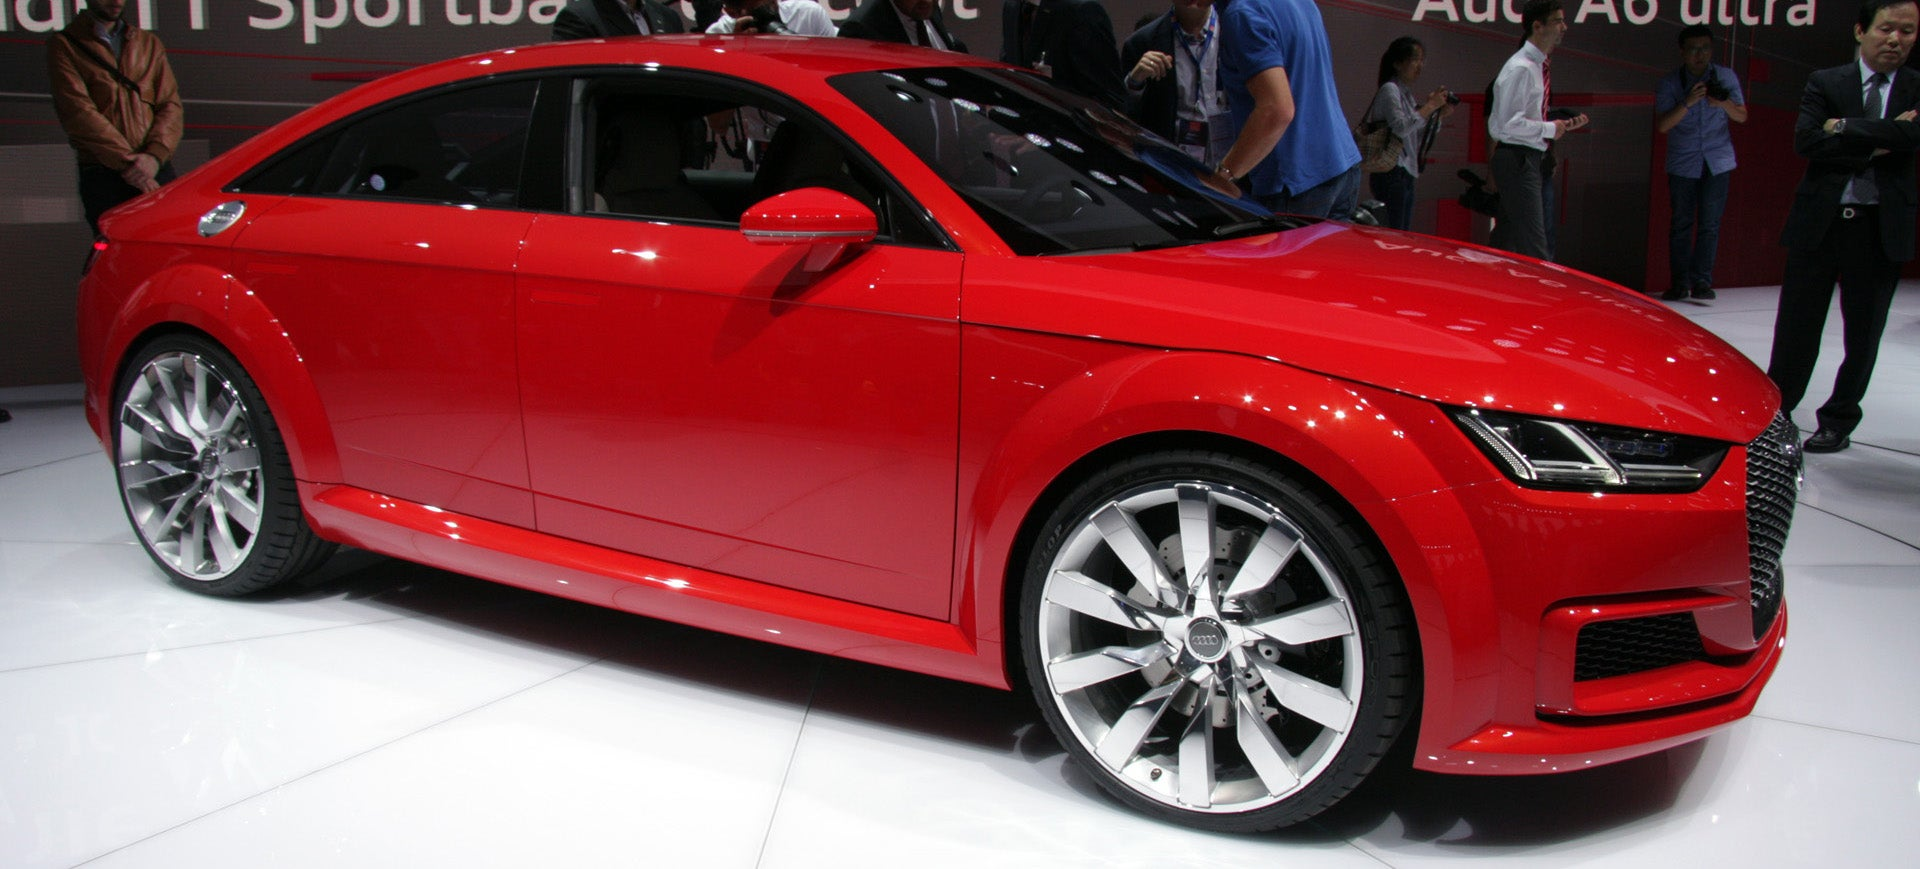 here 39 s how much space you get in the beetleized audi tt sportback. Black Bedroom Furniture Sets. Home Design Ideas